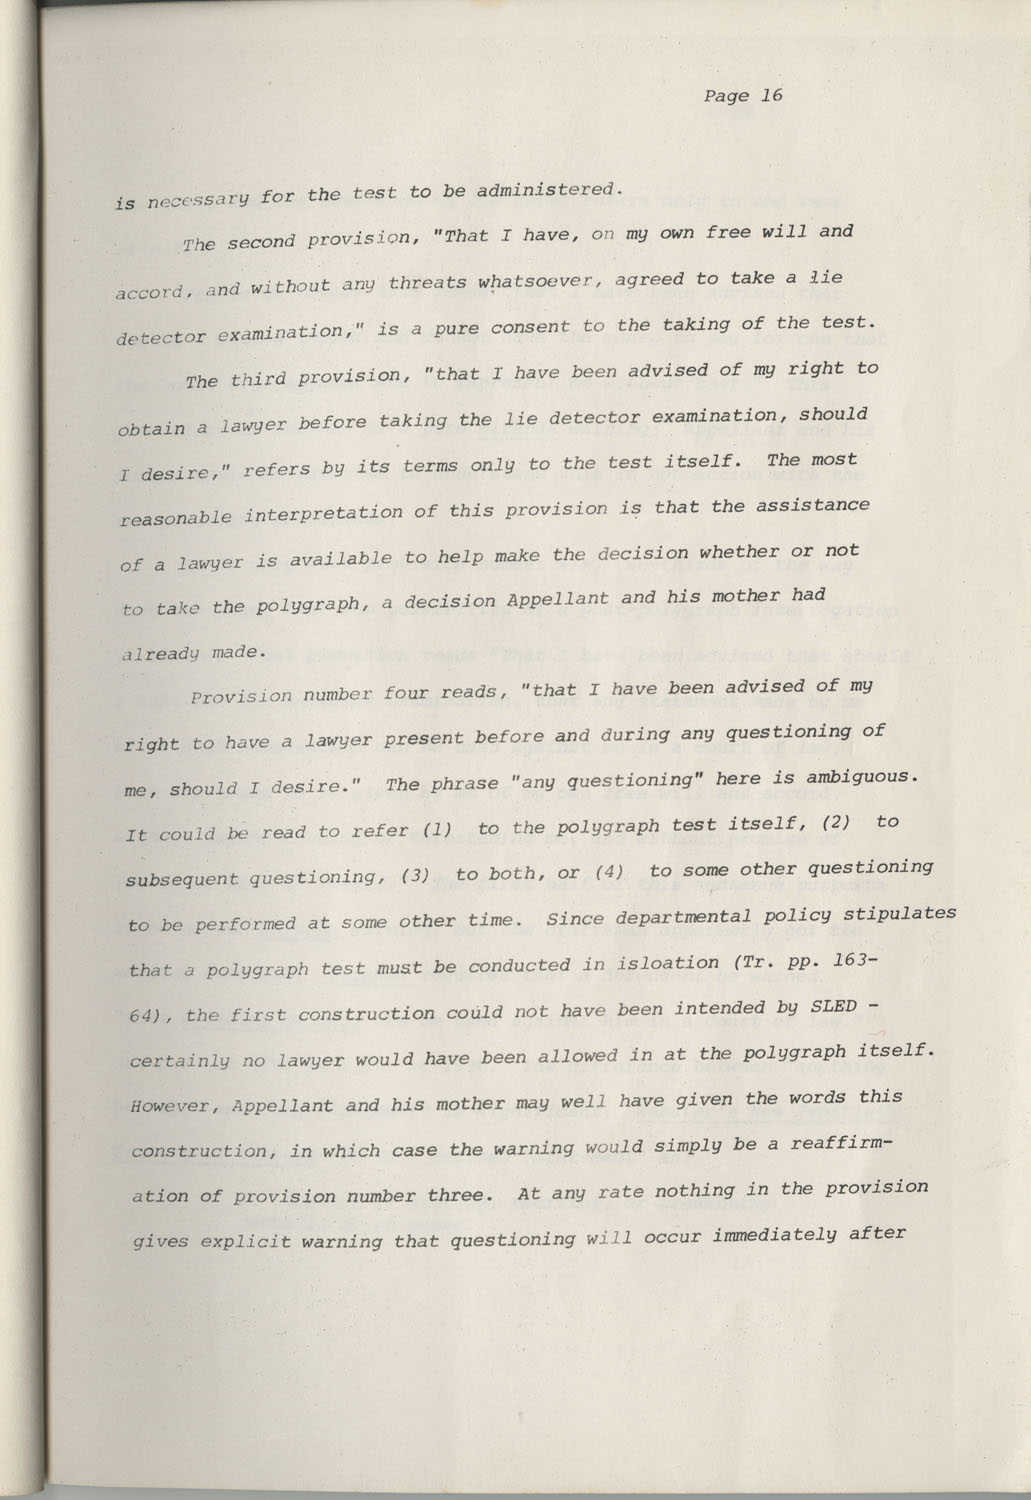 State of South Carolina vs. Robert Lee Smith, Brief of Appellant, Page 16